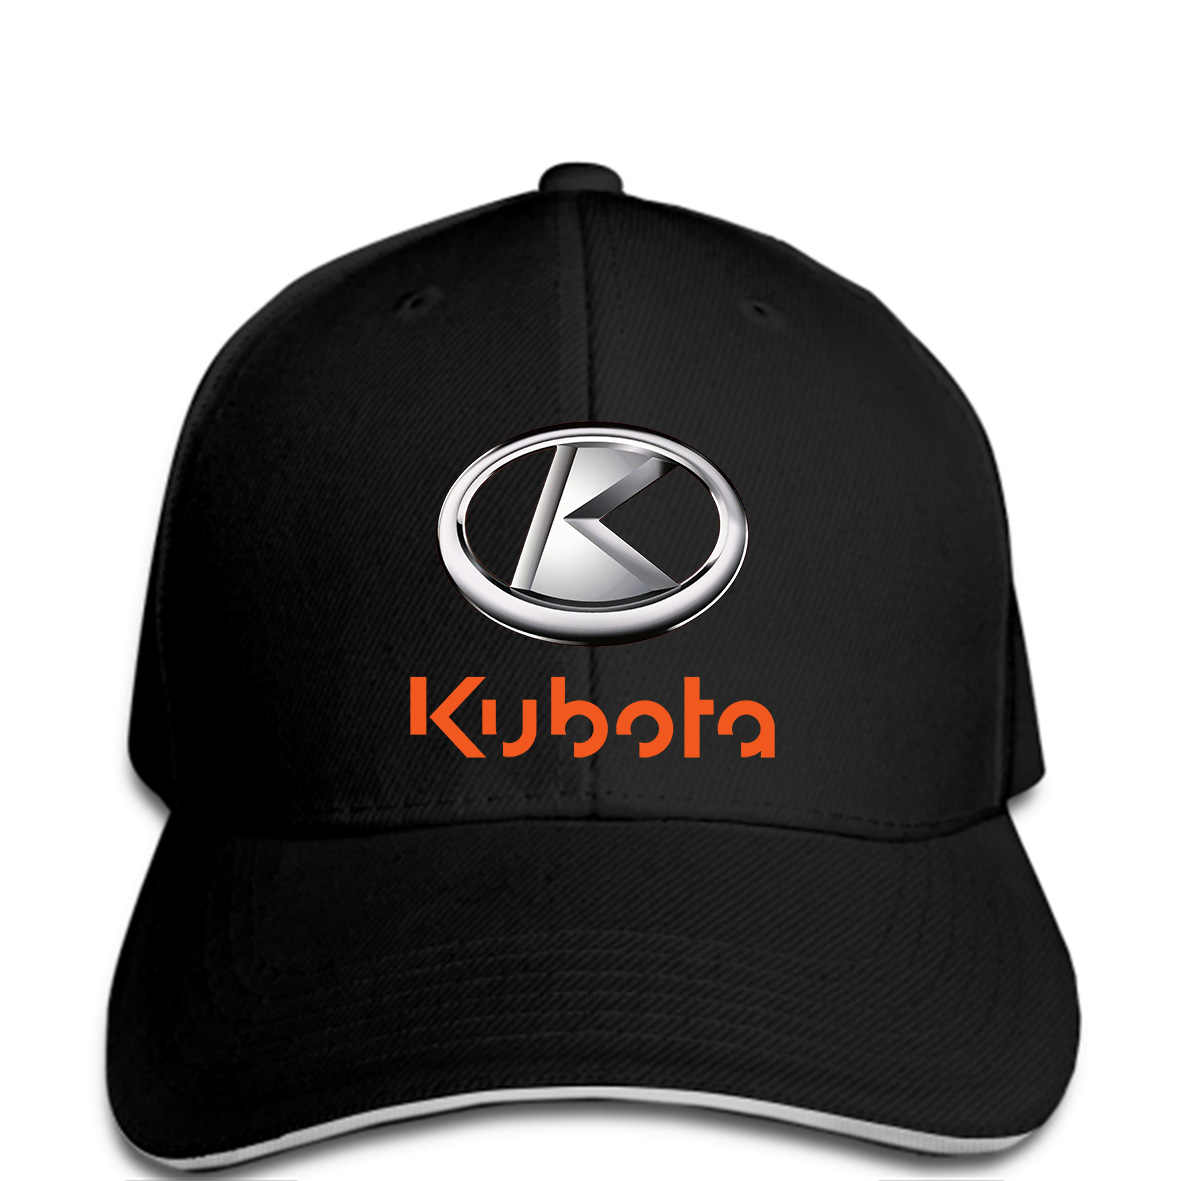 f006c264e78 Detail Feedback Questions about Men Baseball caps Kubota Tractor ...